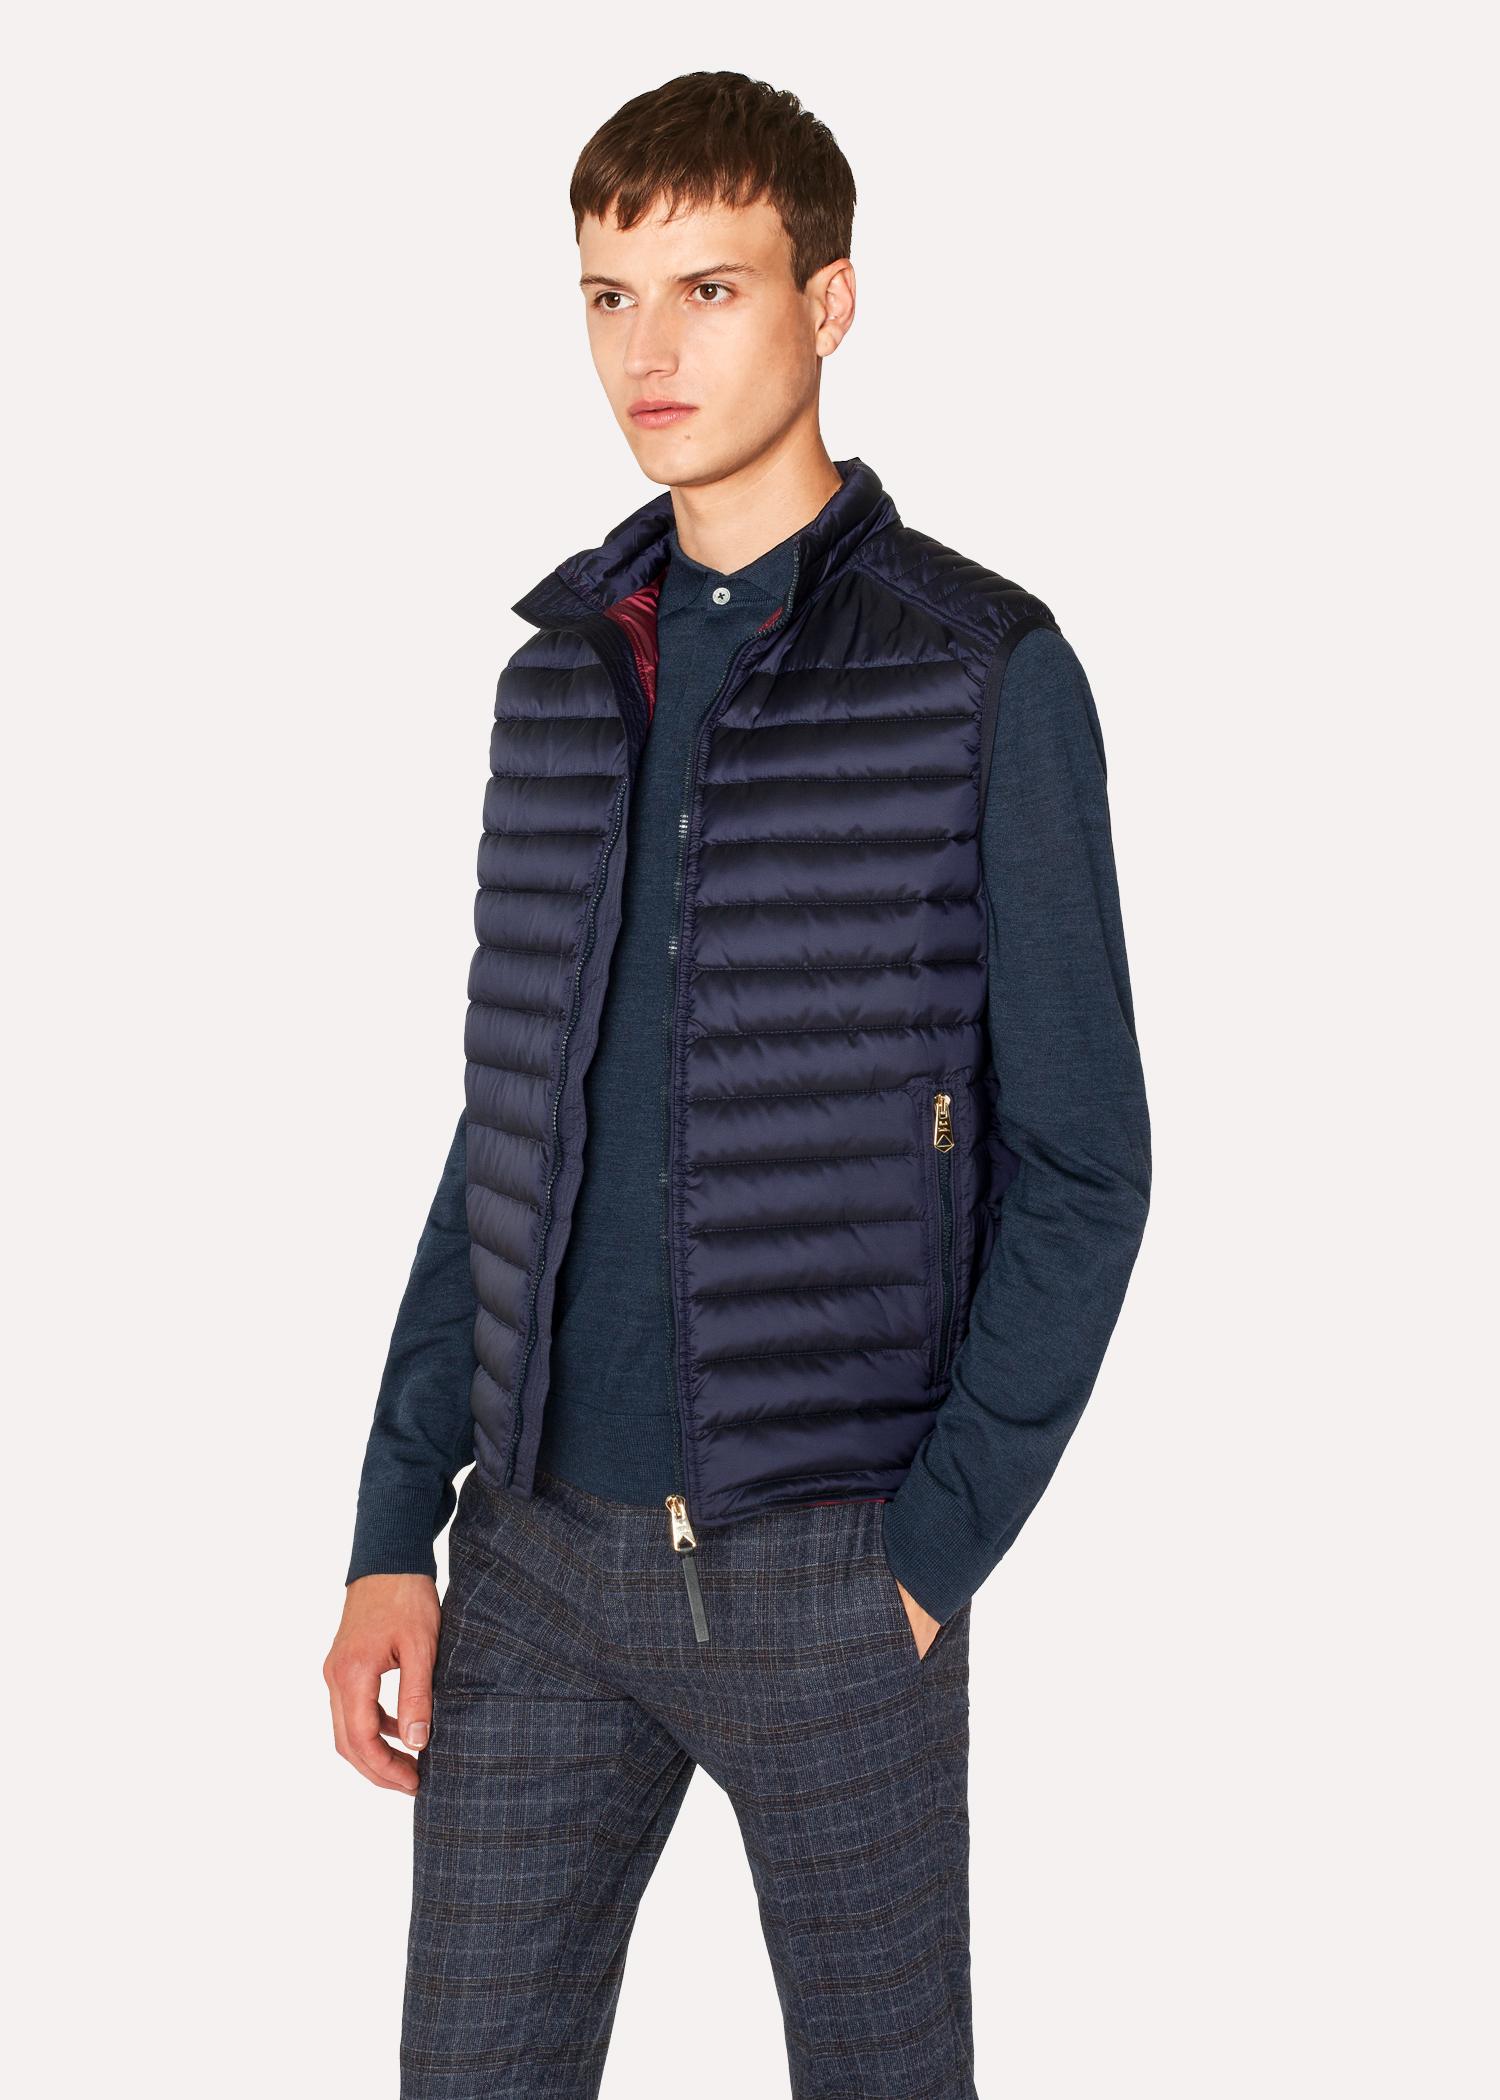 912969acf1 Men s Navy Quilted Down Gilet - Paul Smith Australia